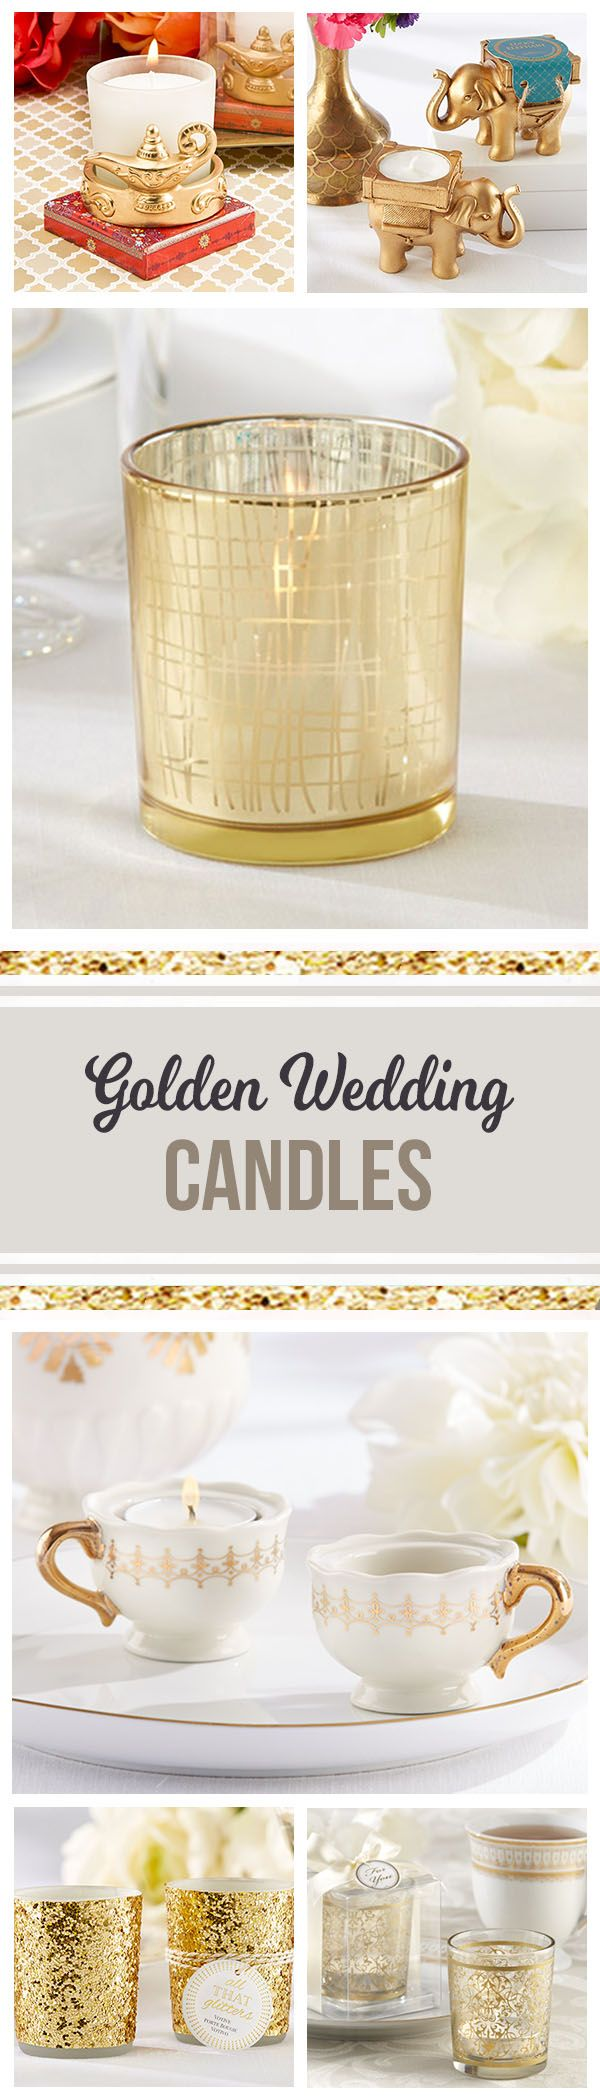 73981f645bd703da7d02302885e11be5  gold candles party fashion - Wedding Favors